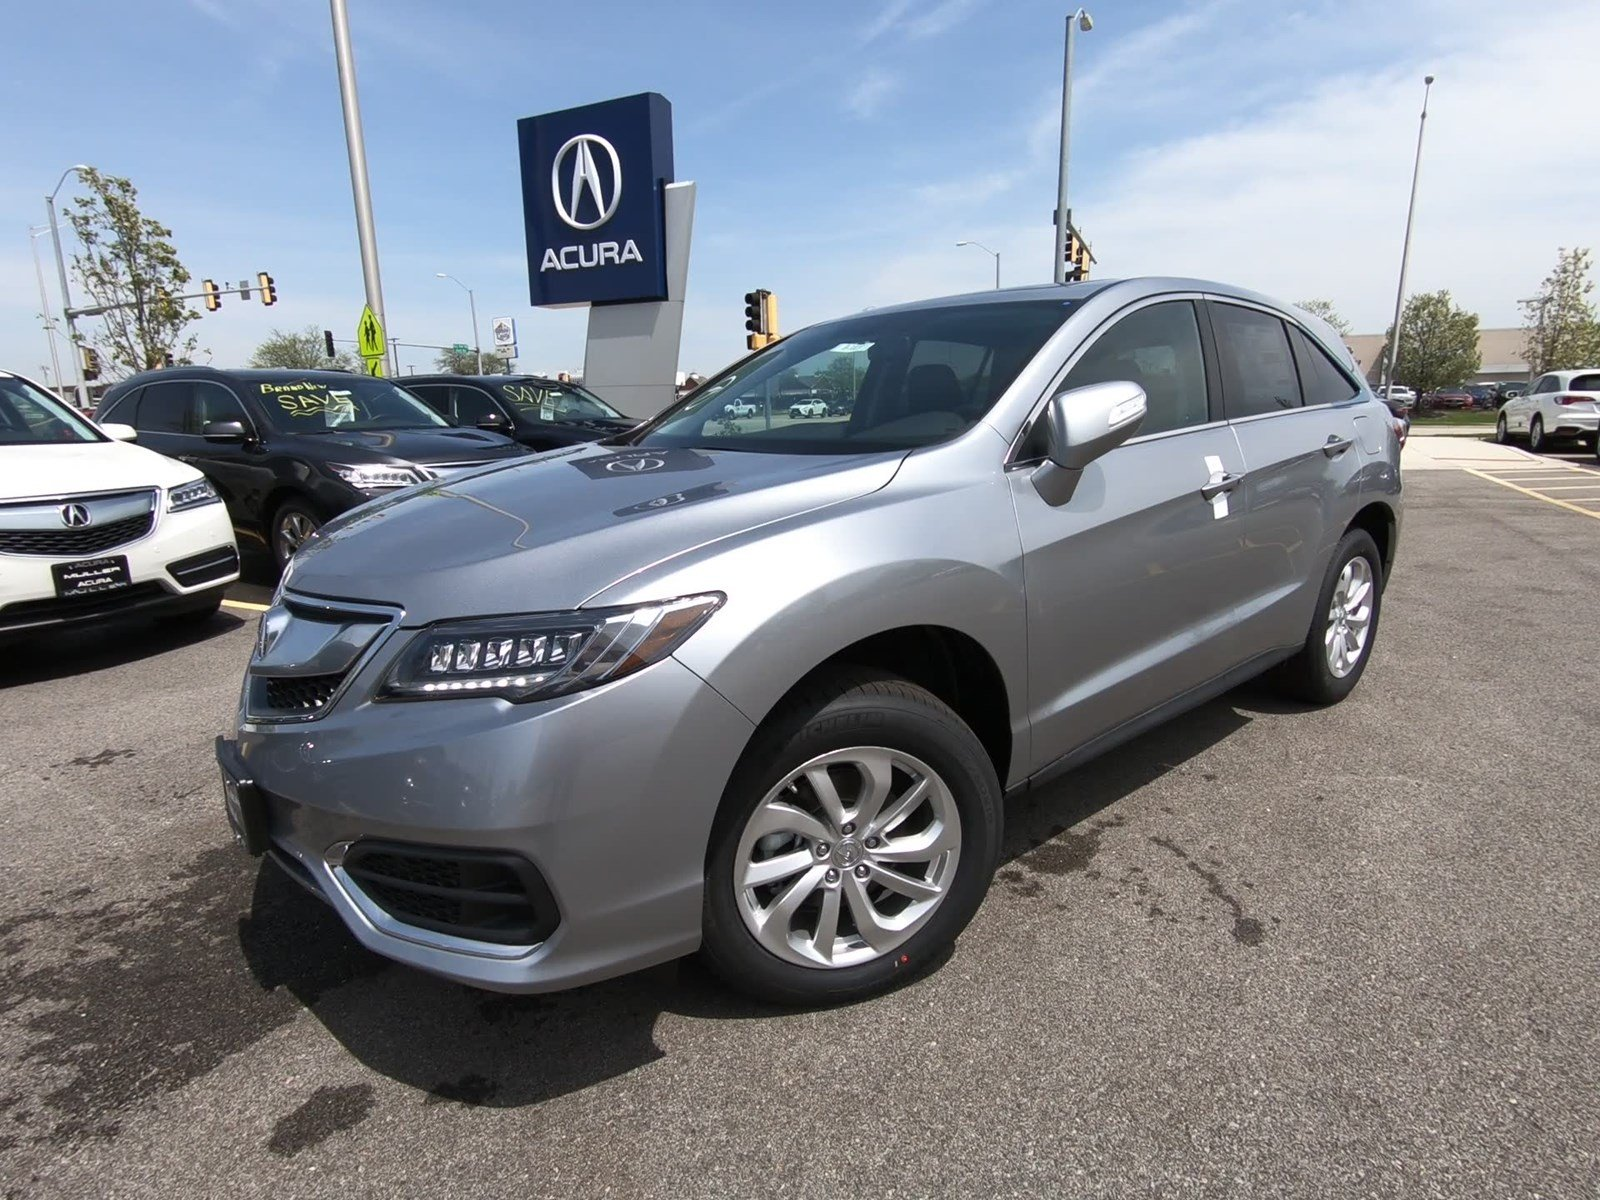 all rdx drive in new suv avon acura wheel awd inventory canton of